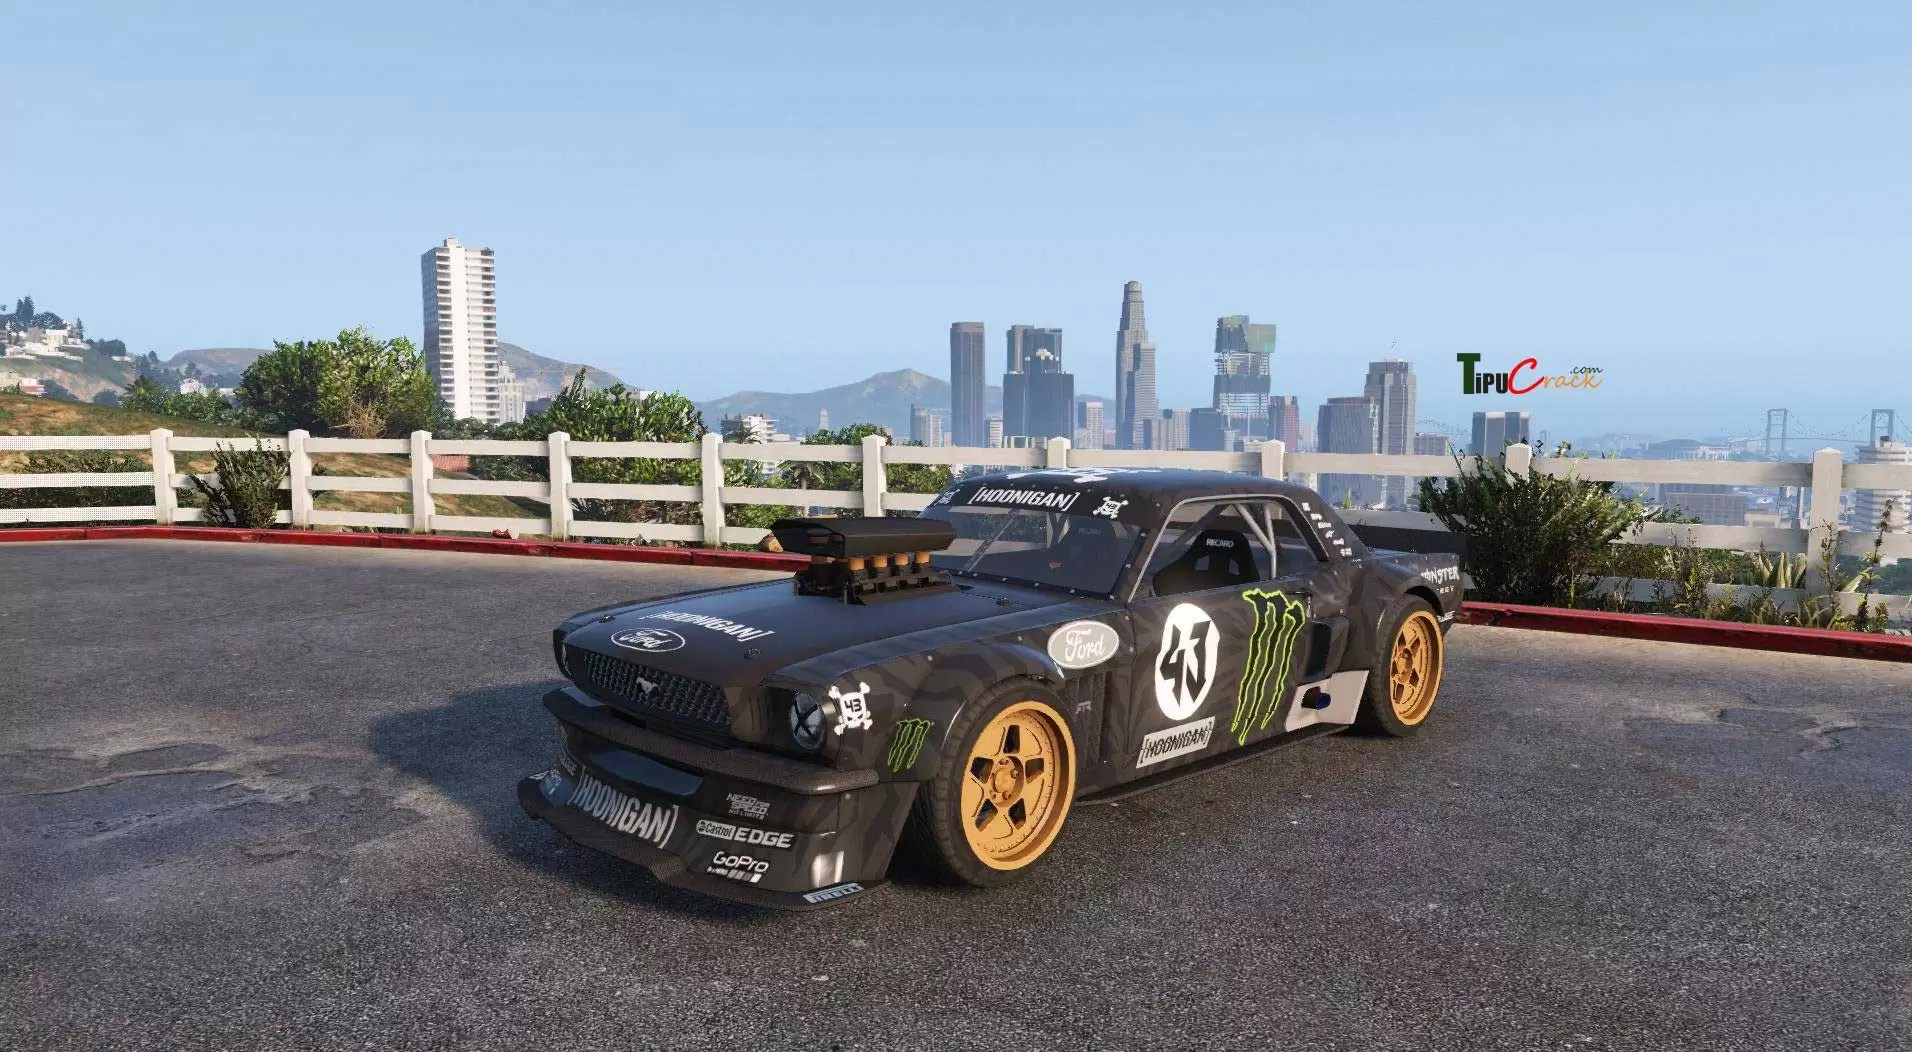 Monster Rally Car Wallpaper Gta 5 Crack With Serial Number Free Download